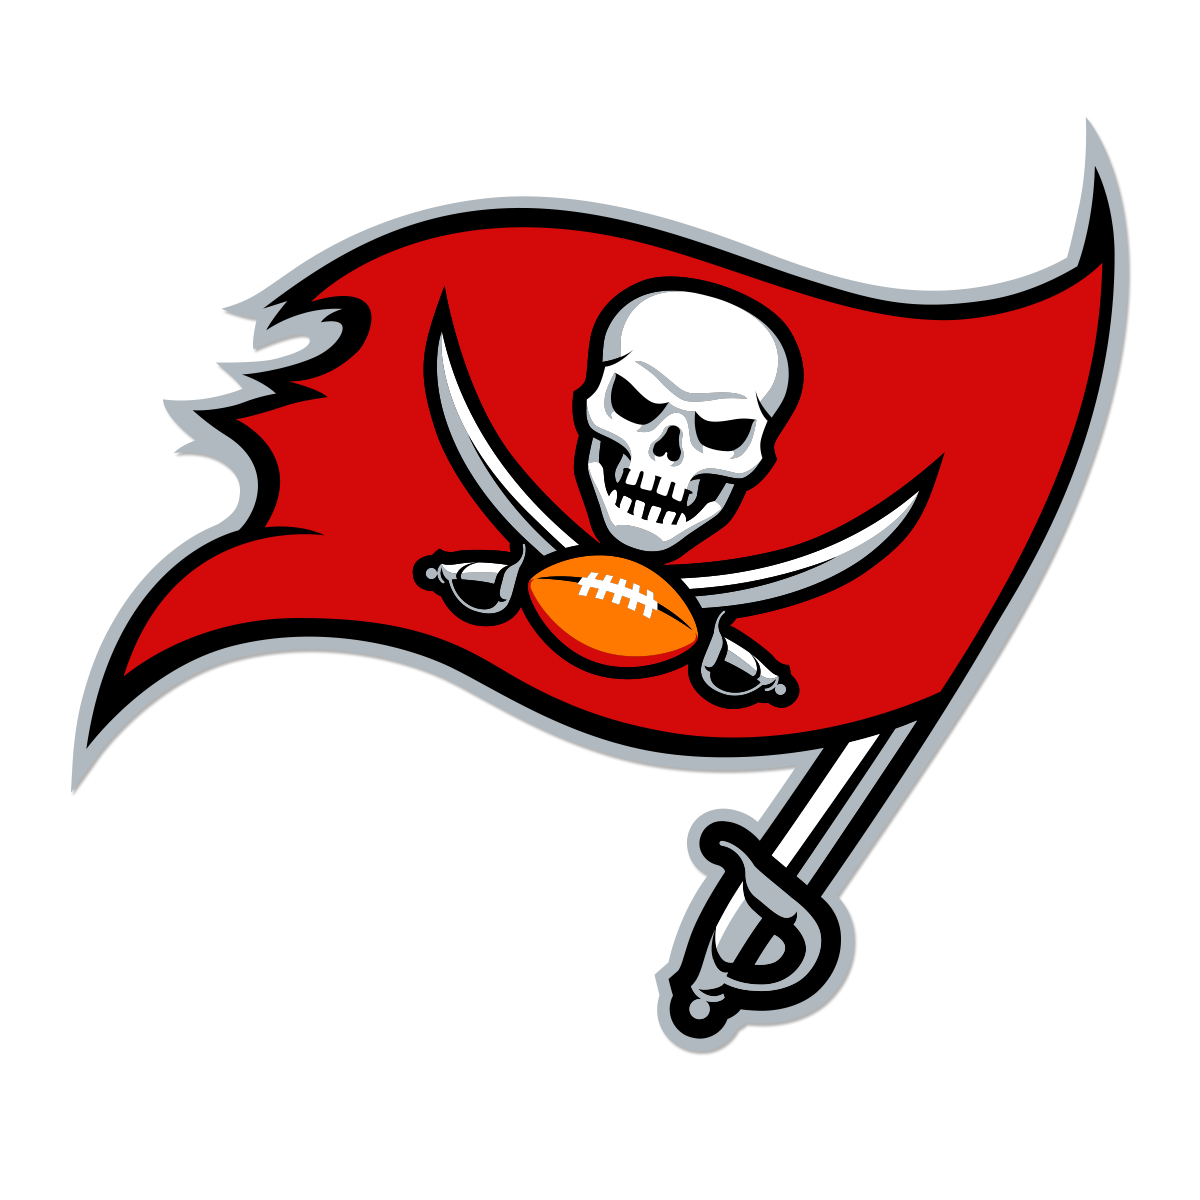 Top 10 Current NFL Logos | HowTheyPlay